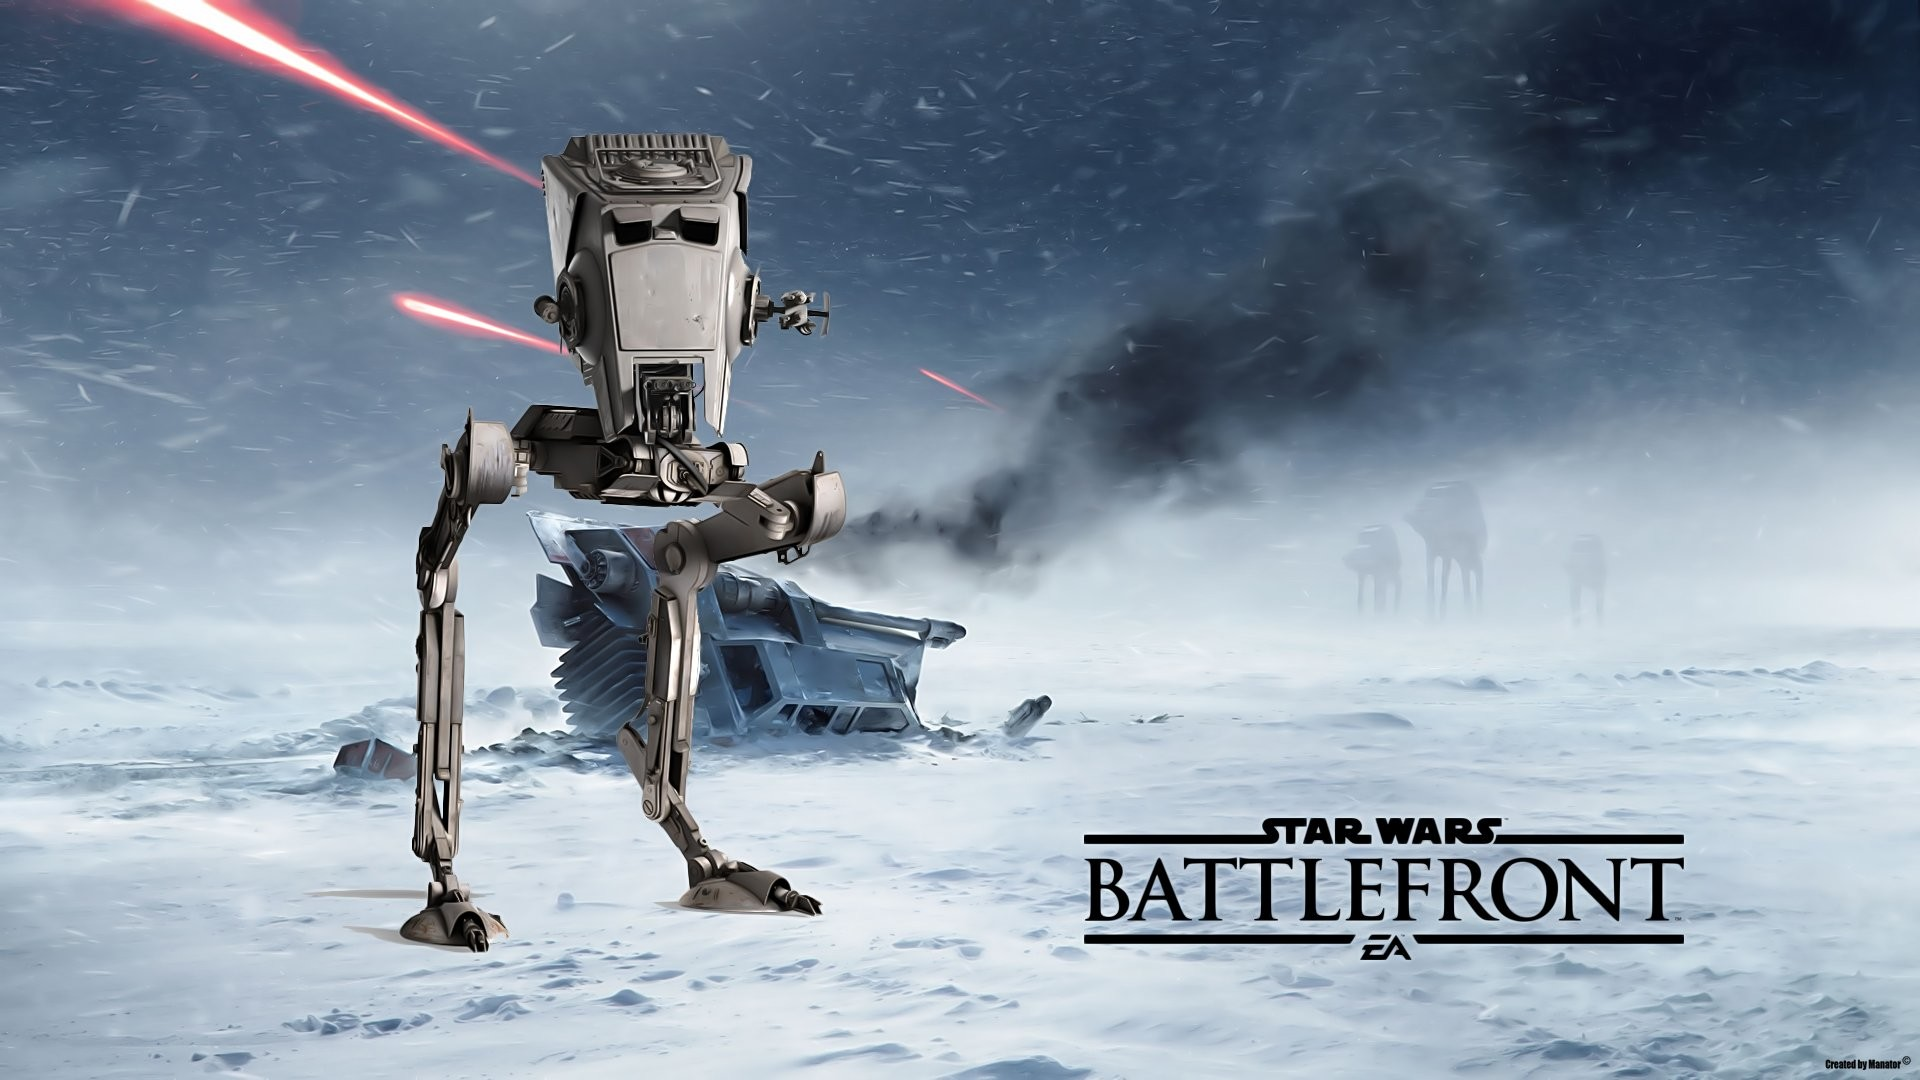 1920x1080 STAR WARS BATTLEFRONT sci-fi fps shooter action 1swbattlefront wallpaper |   | 670707 | WallpaperUP